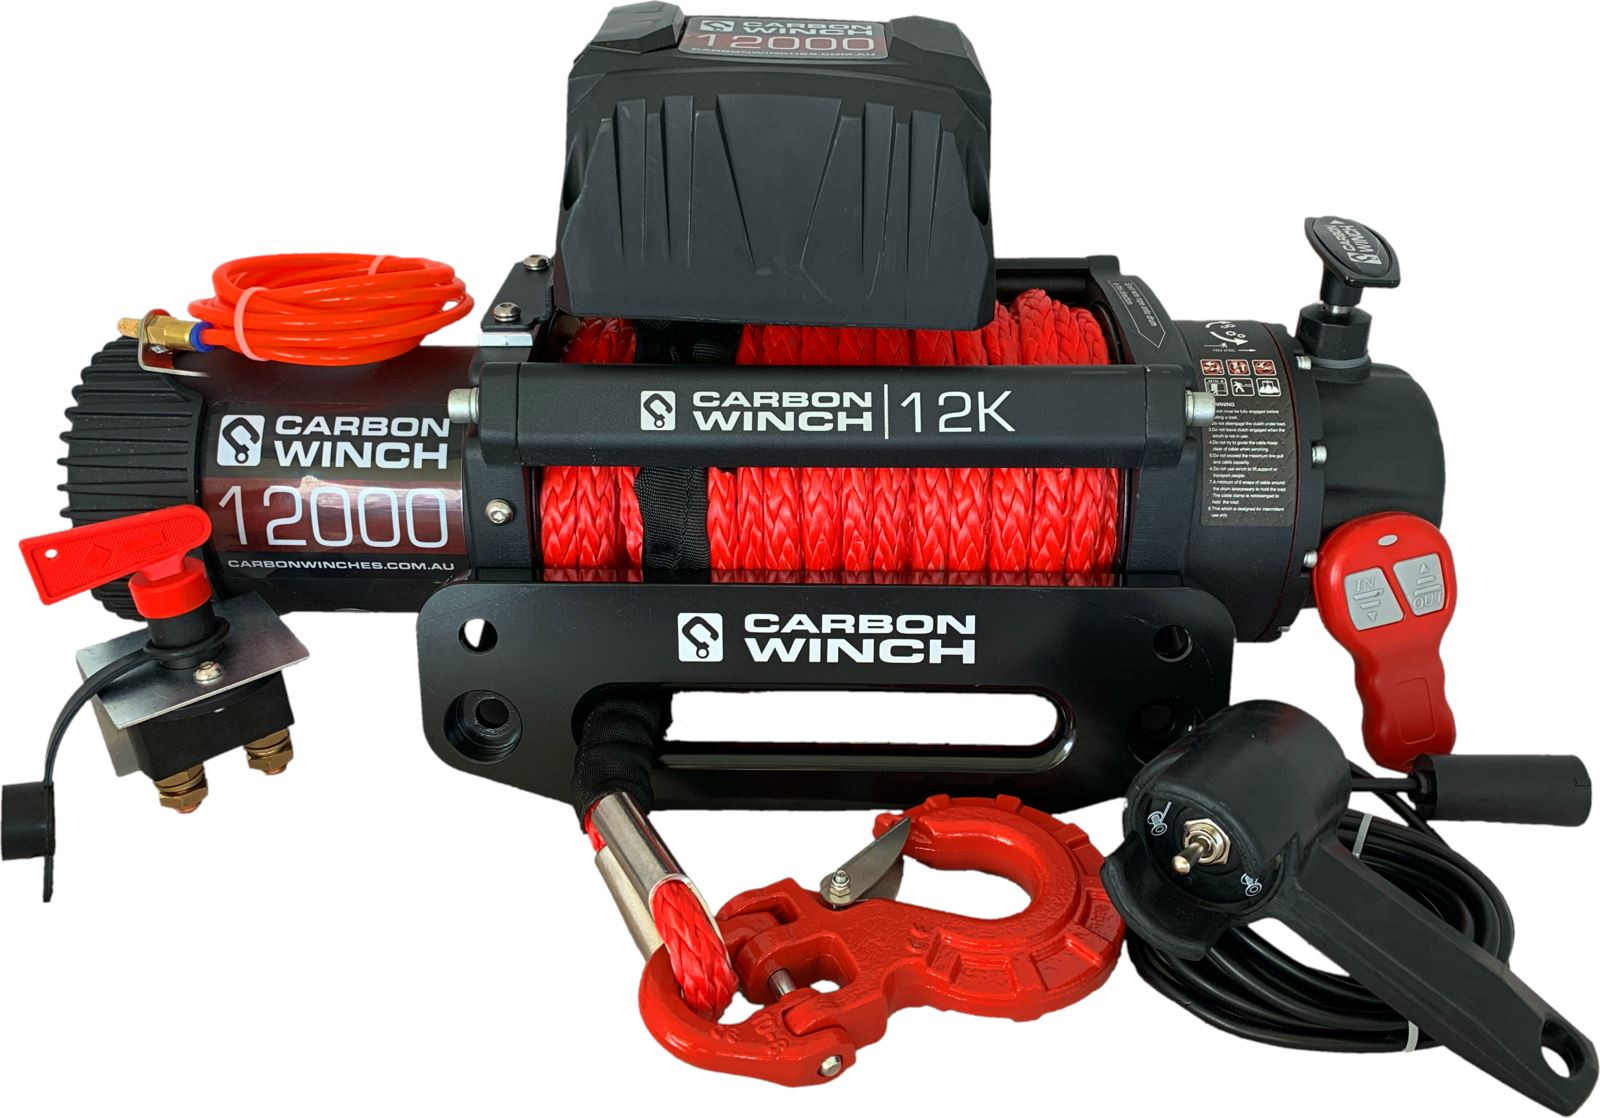 24 Volt Carbon 12K 12000Lb Electric Winch With Synthetic Rope Carbon Winch